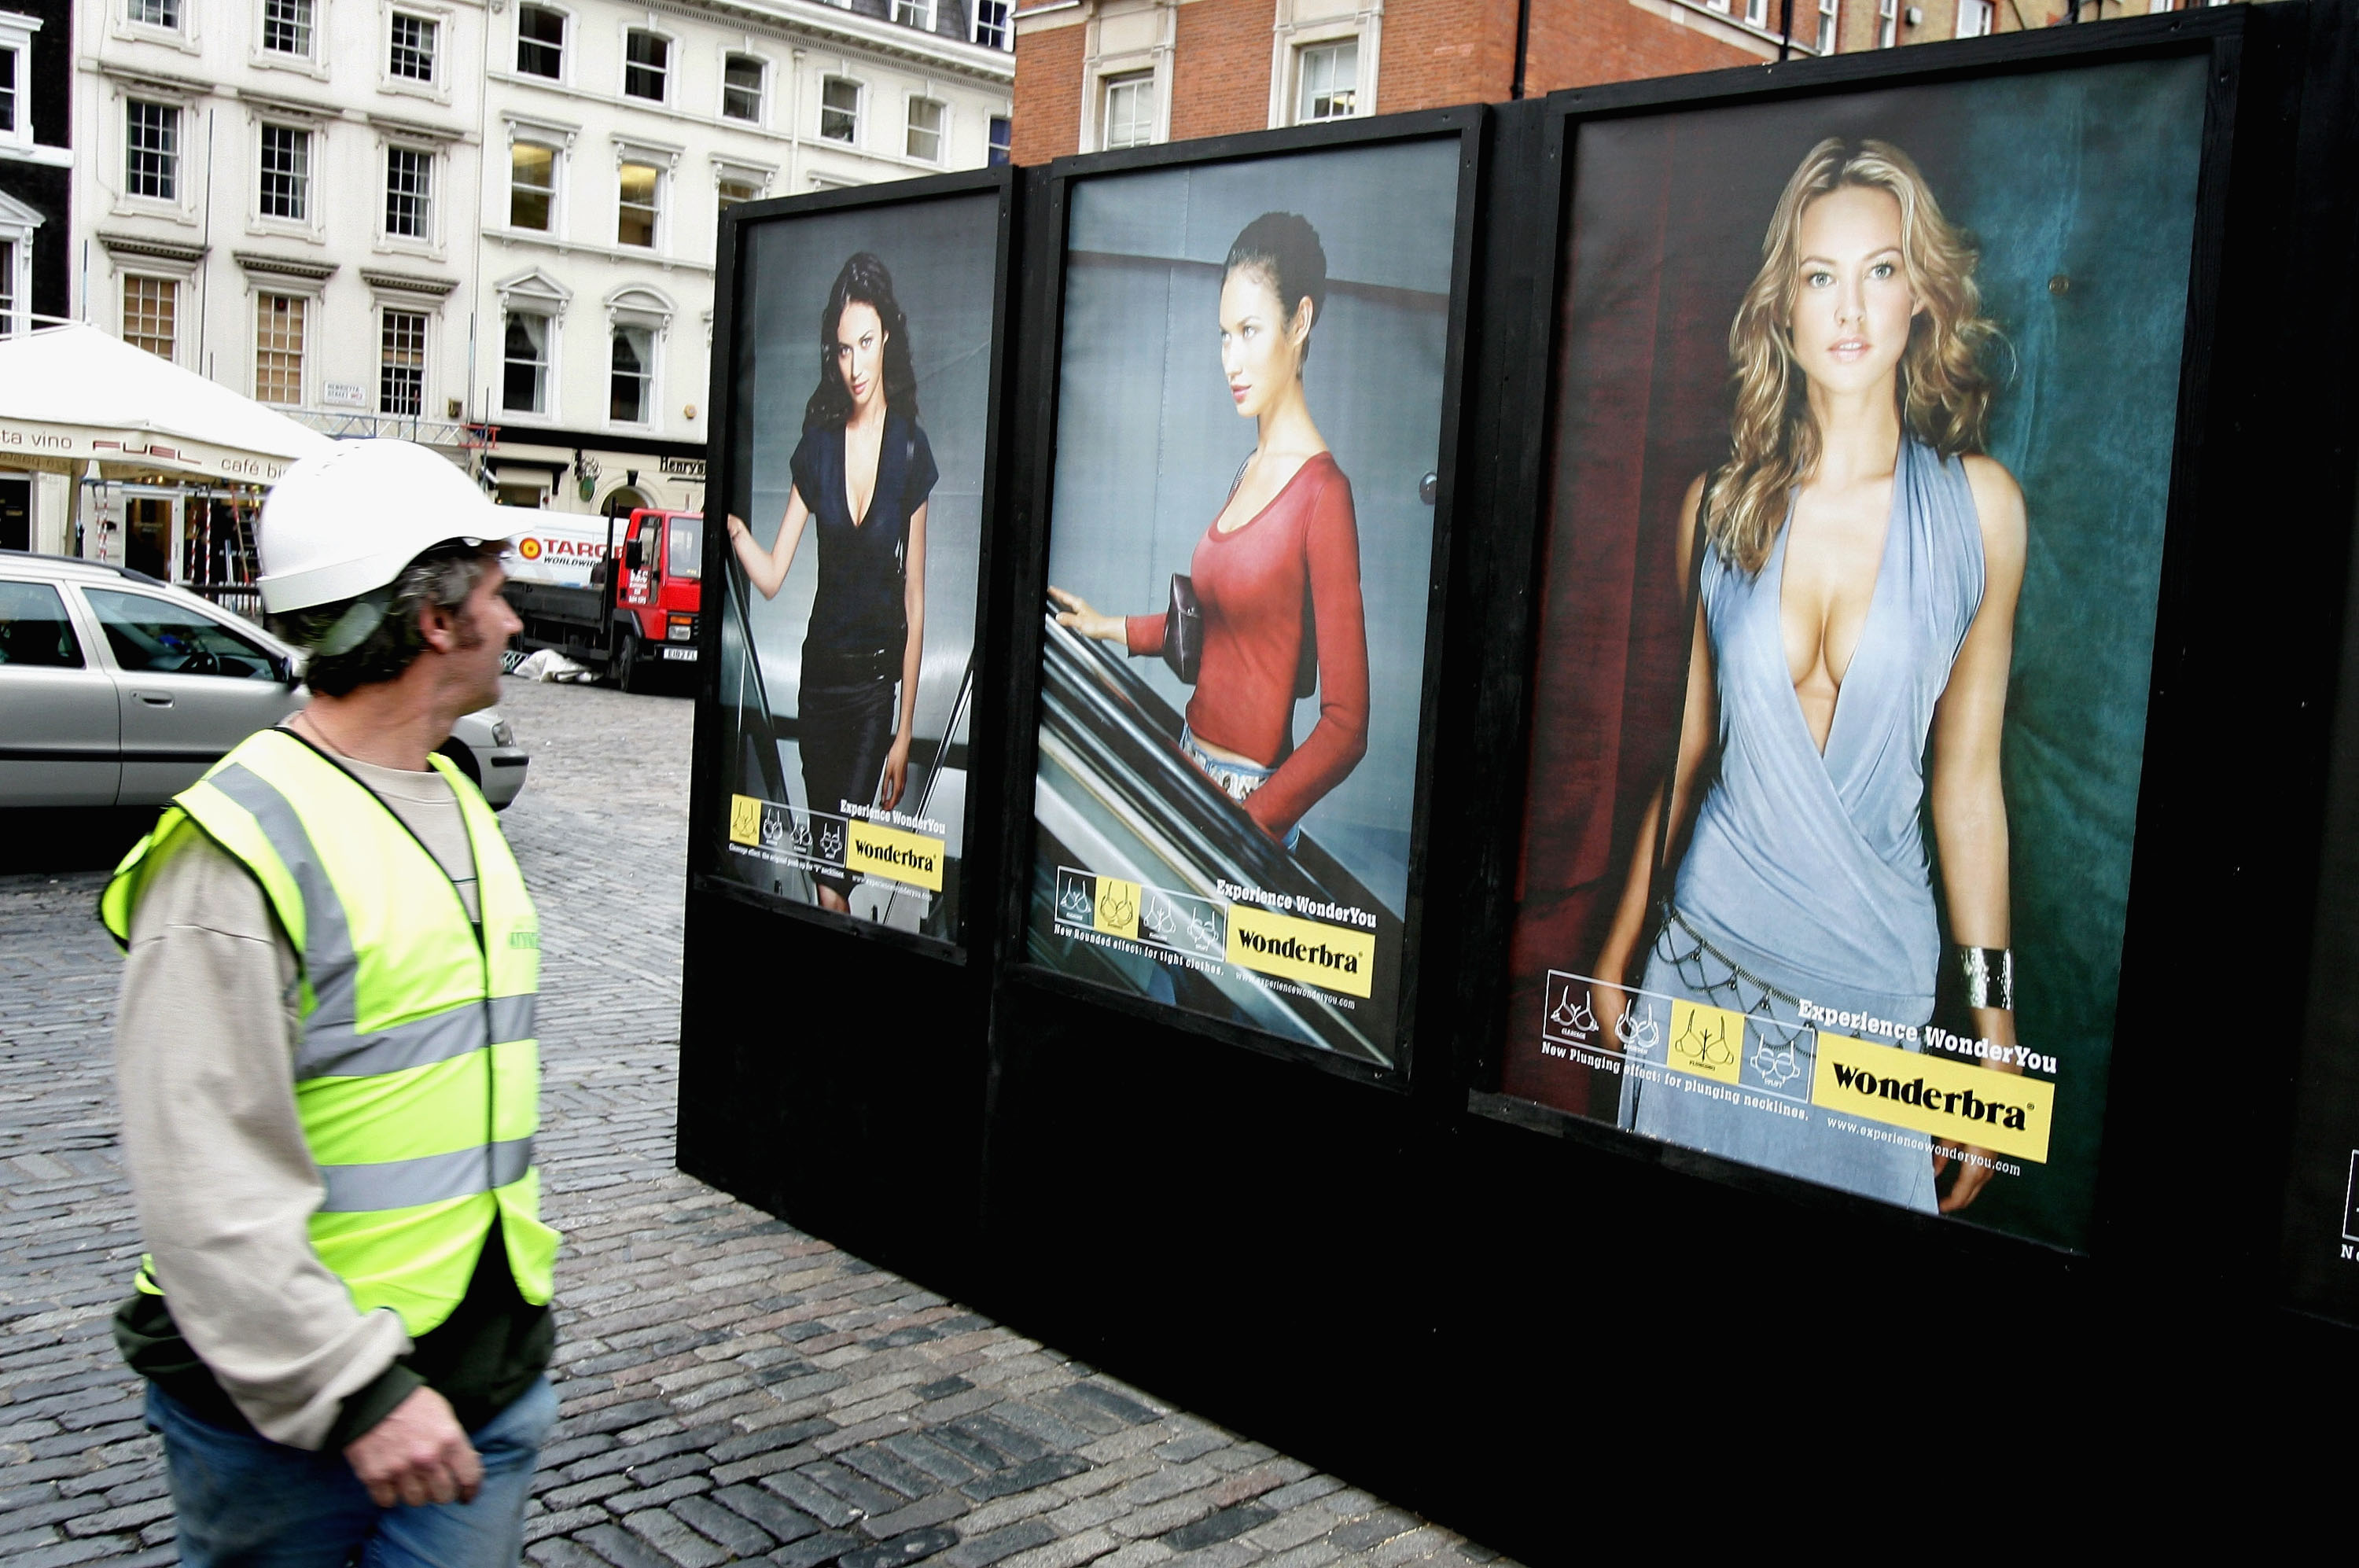 A Wonderbra billboard.